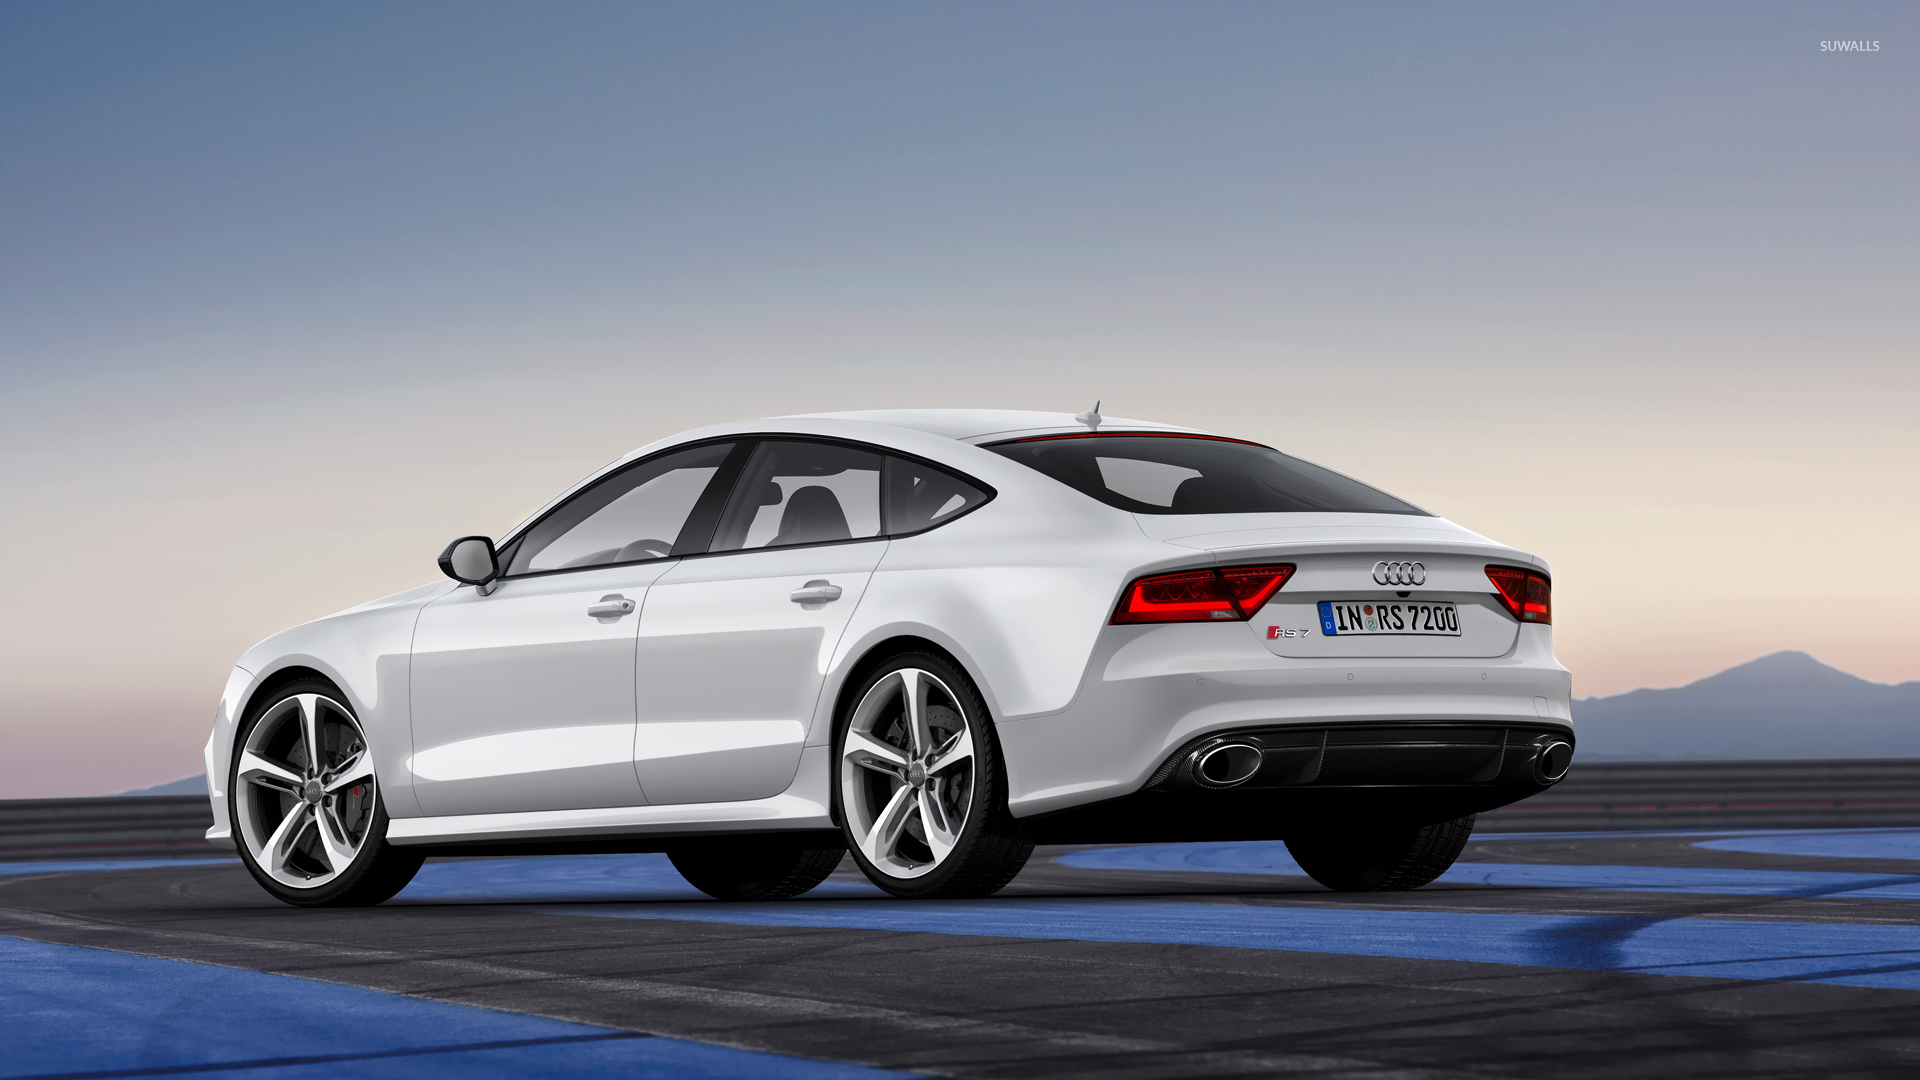 2014 white audi rs7 sportback wallpaper car wallpapers 52960. Black Bedroom Furniture Sets. Home Design Ideas